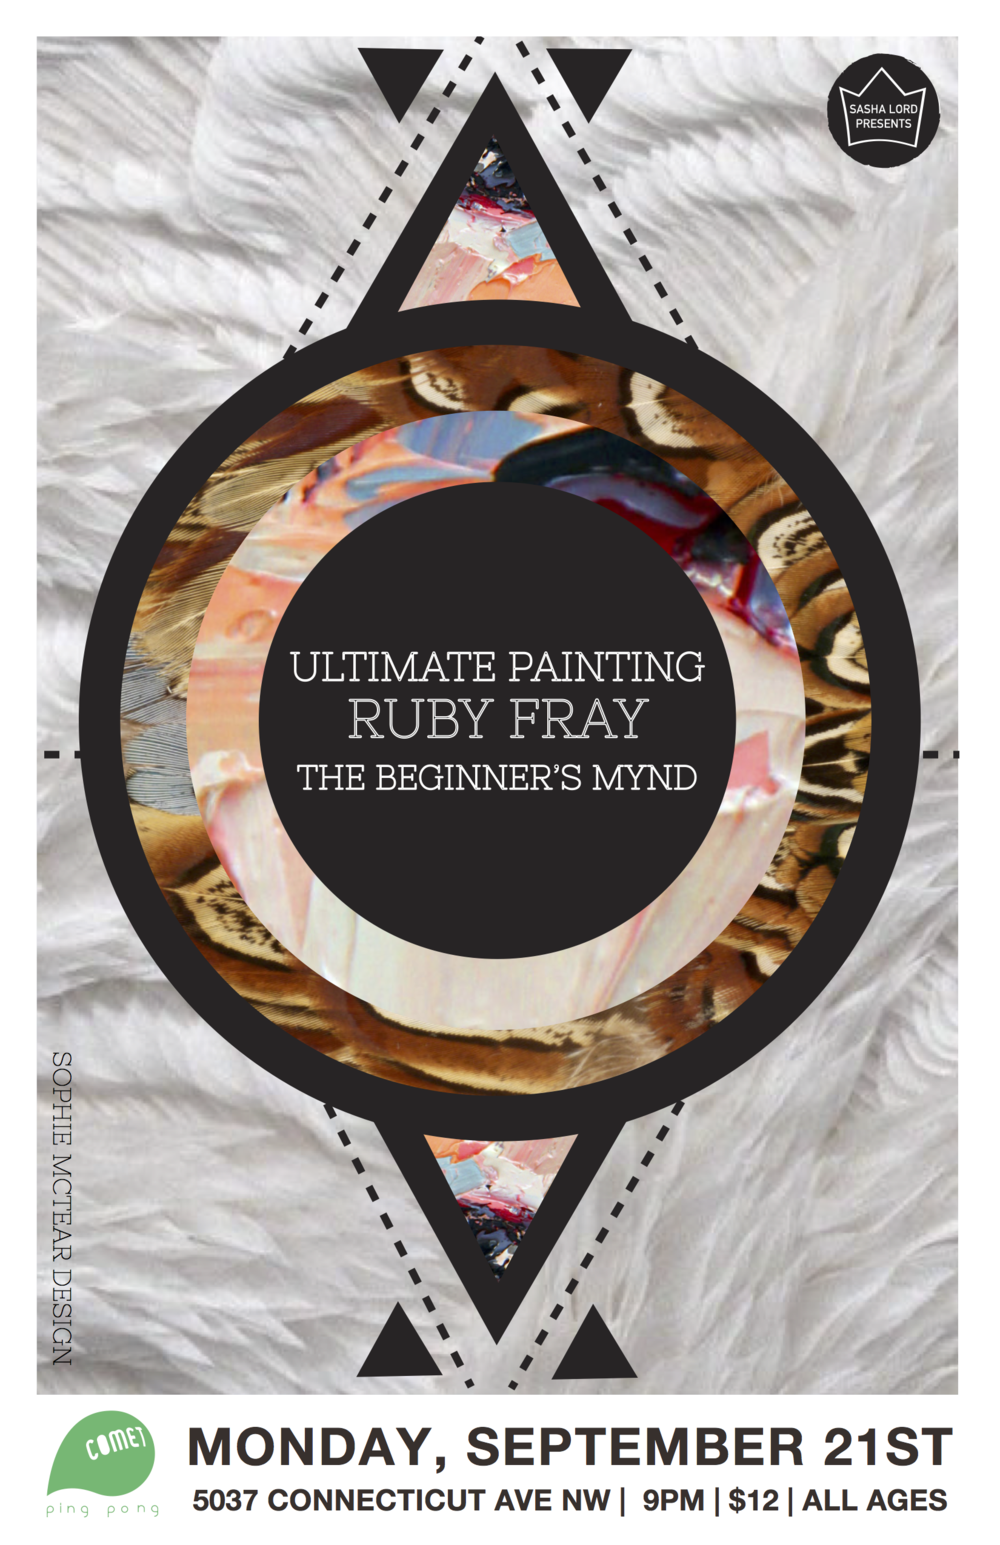 ultimatepainting-rubyfray-beginnersmynd.png